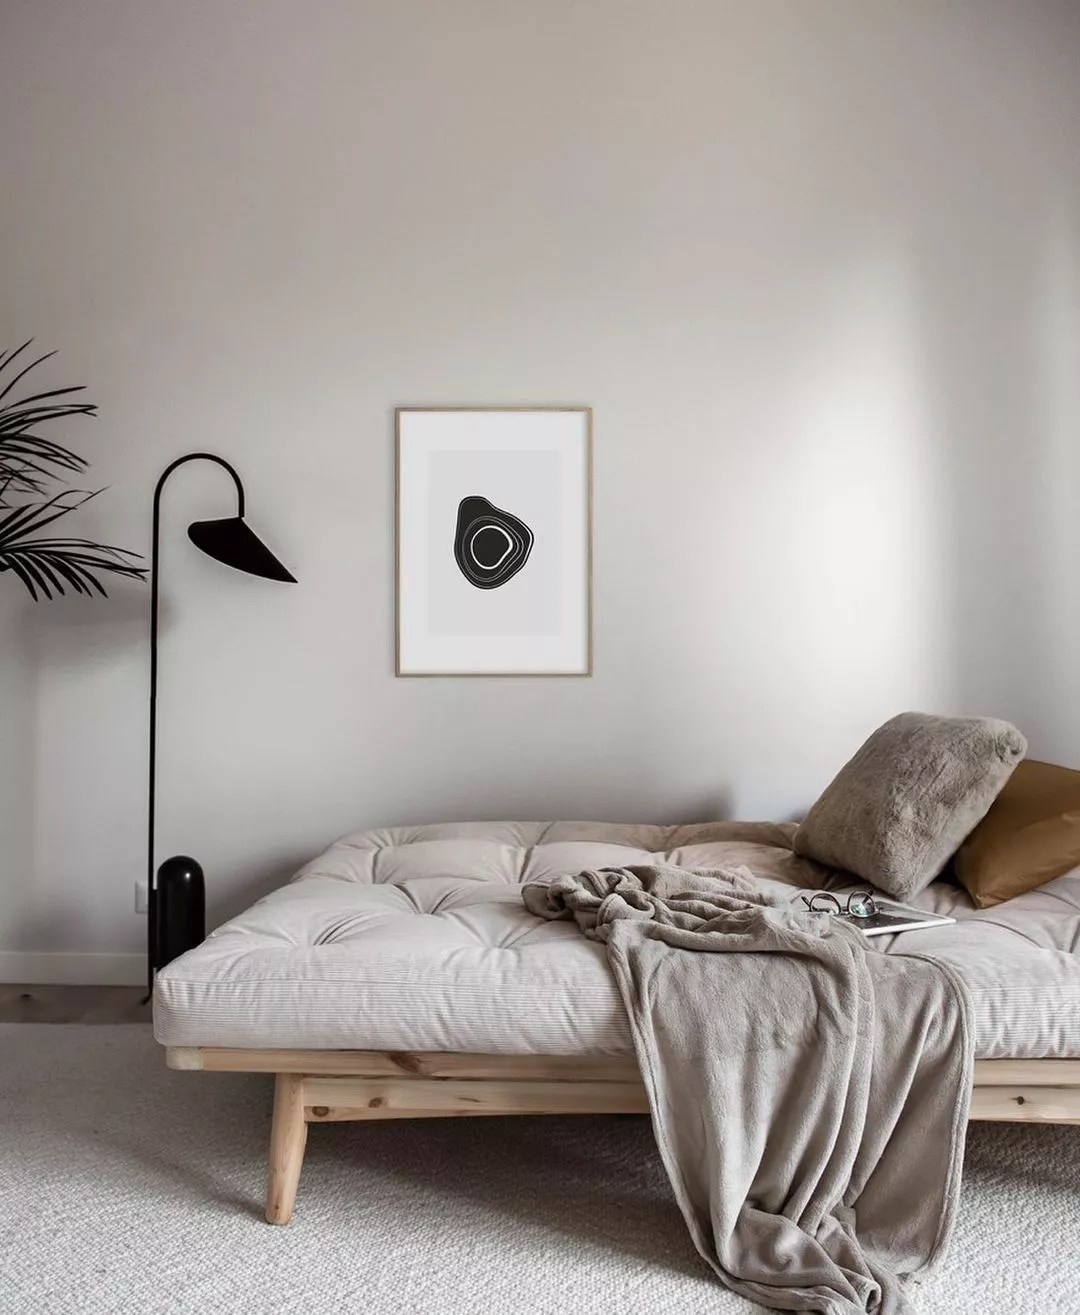 Scandi style day bed with light color palette. Photo by Instagram user @visualpleasuremag